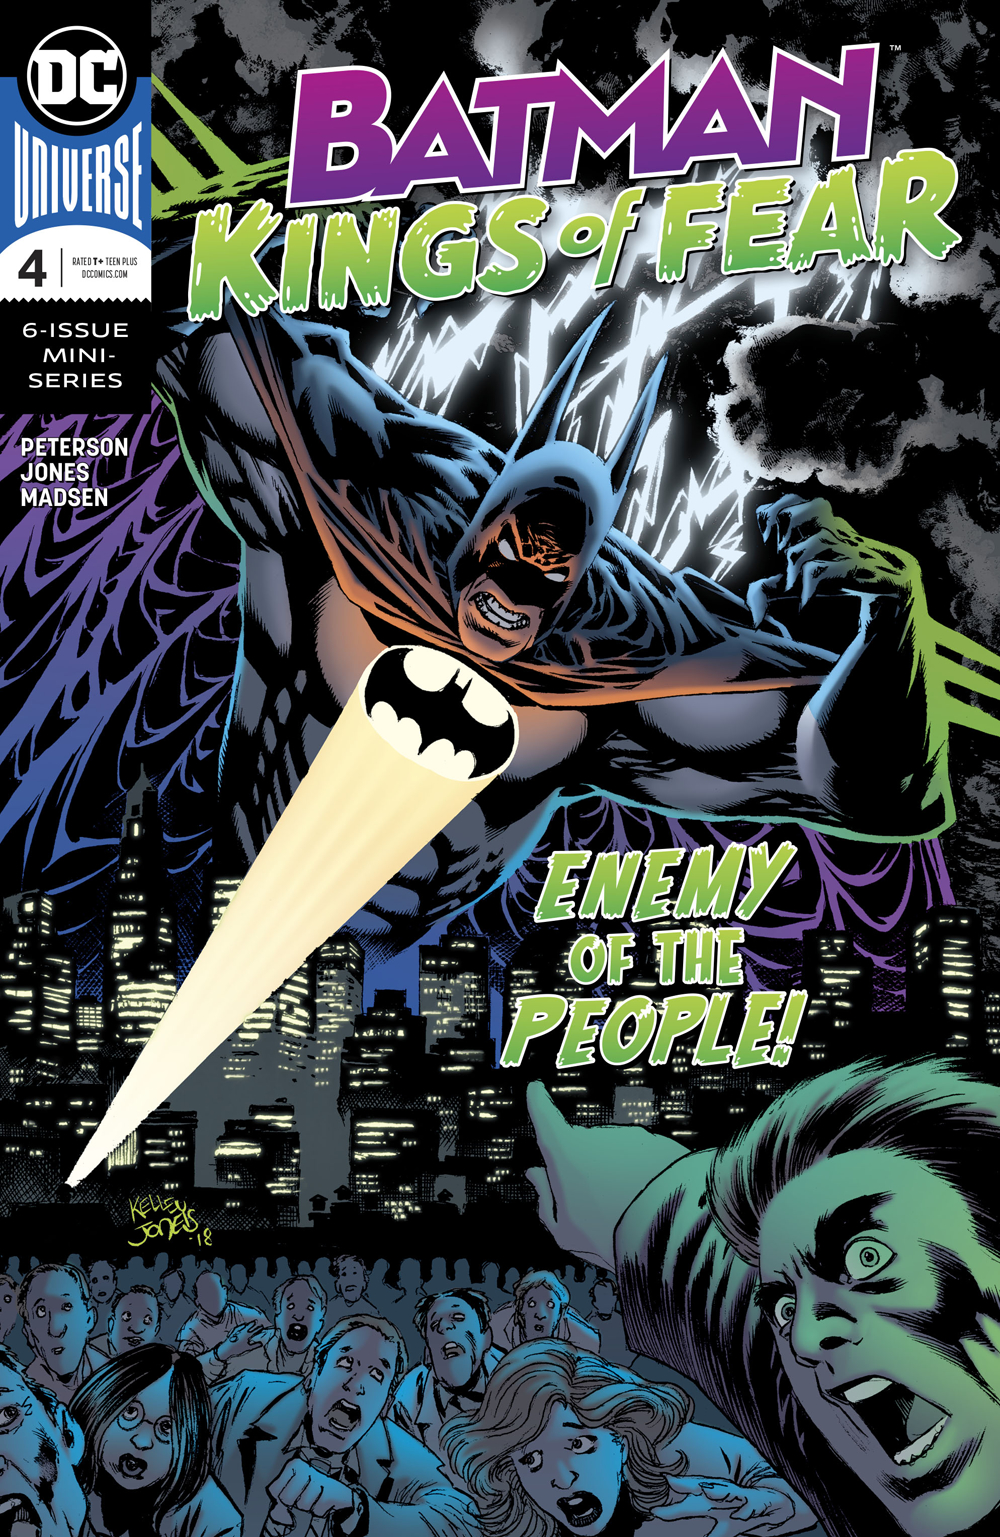 BATMAN KINGS OF FEAR #4 (OF 6)